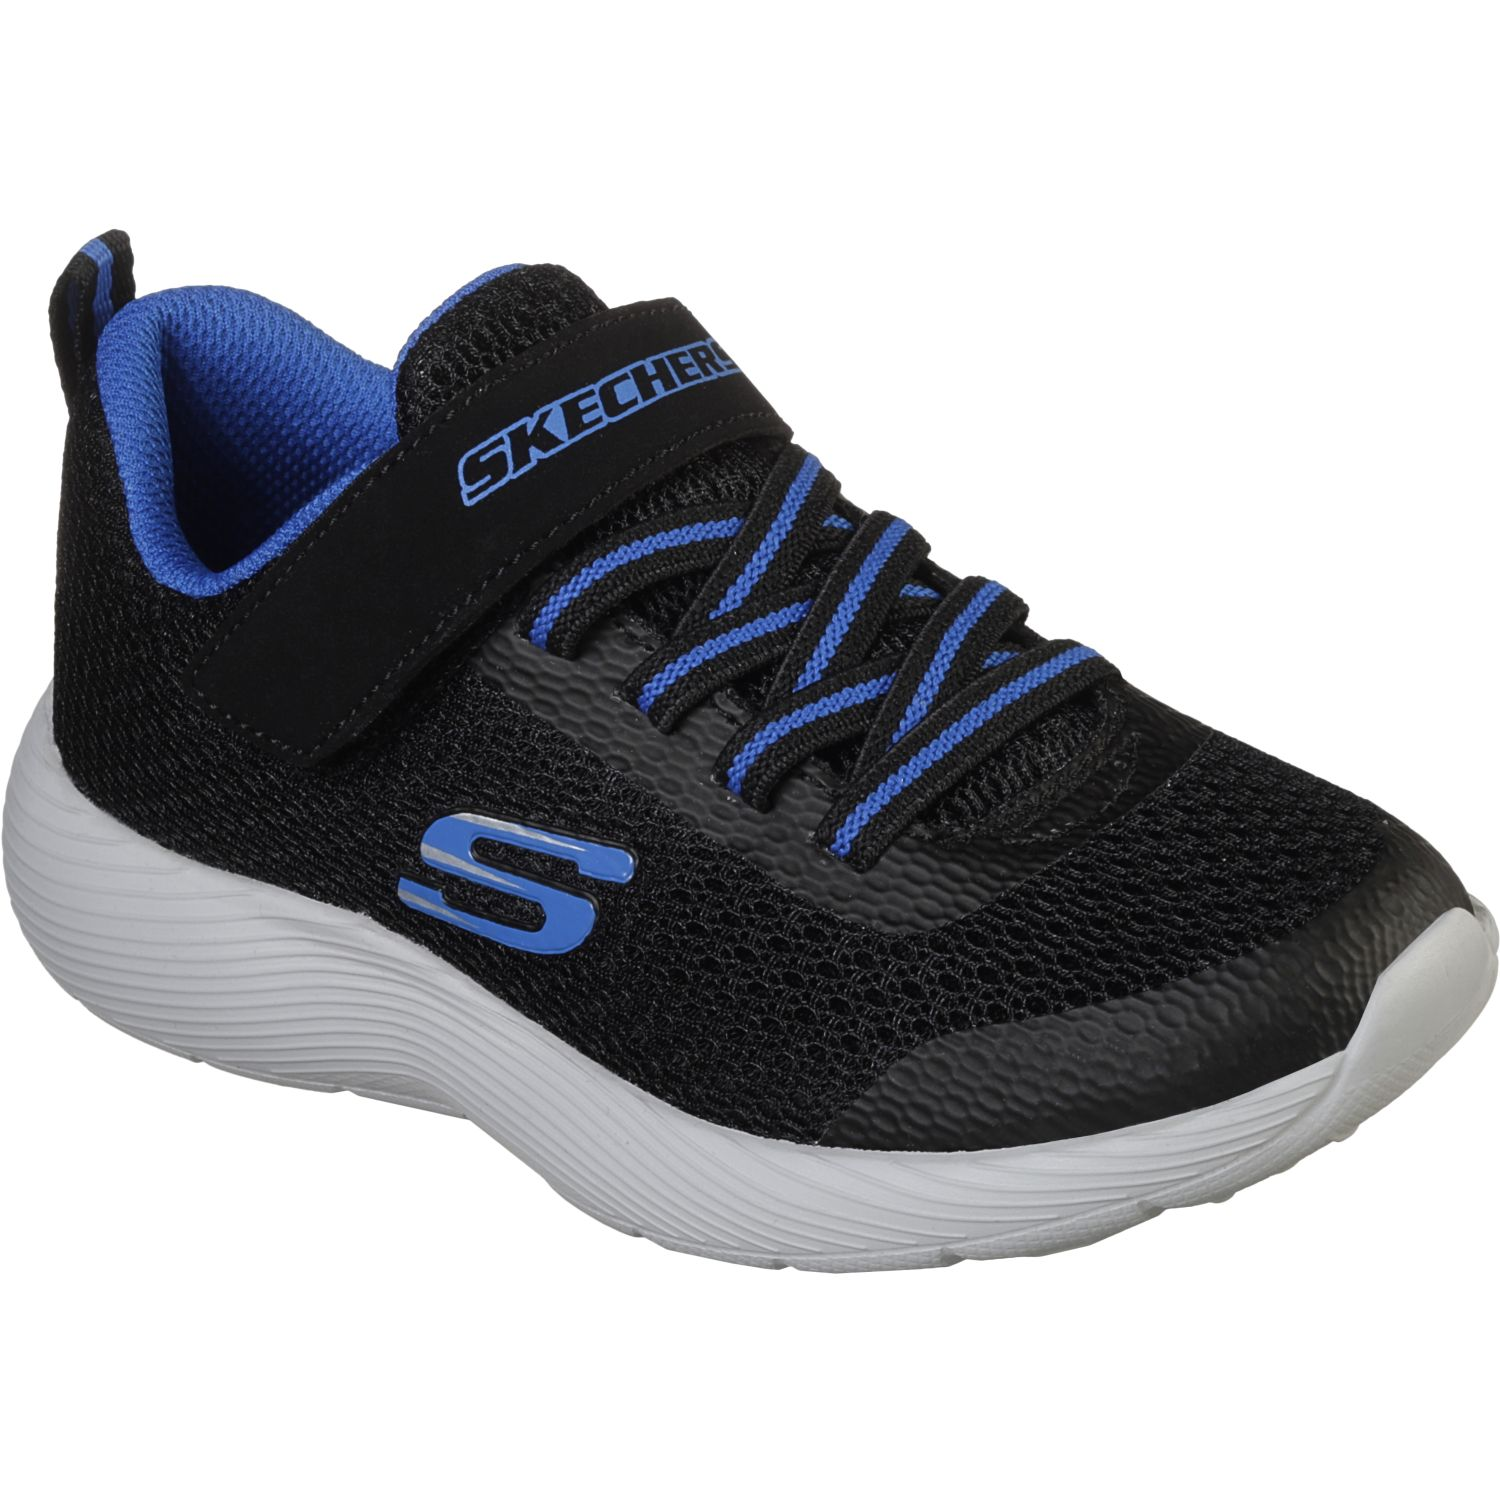 Skechers dyna-lite Negro / azul Walking